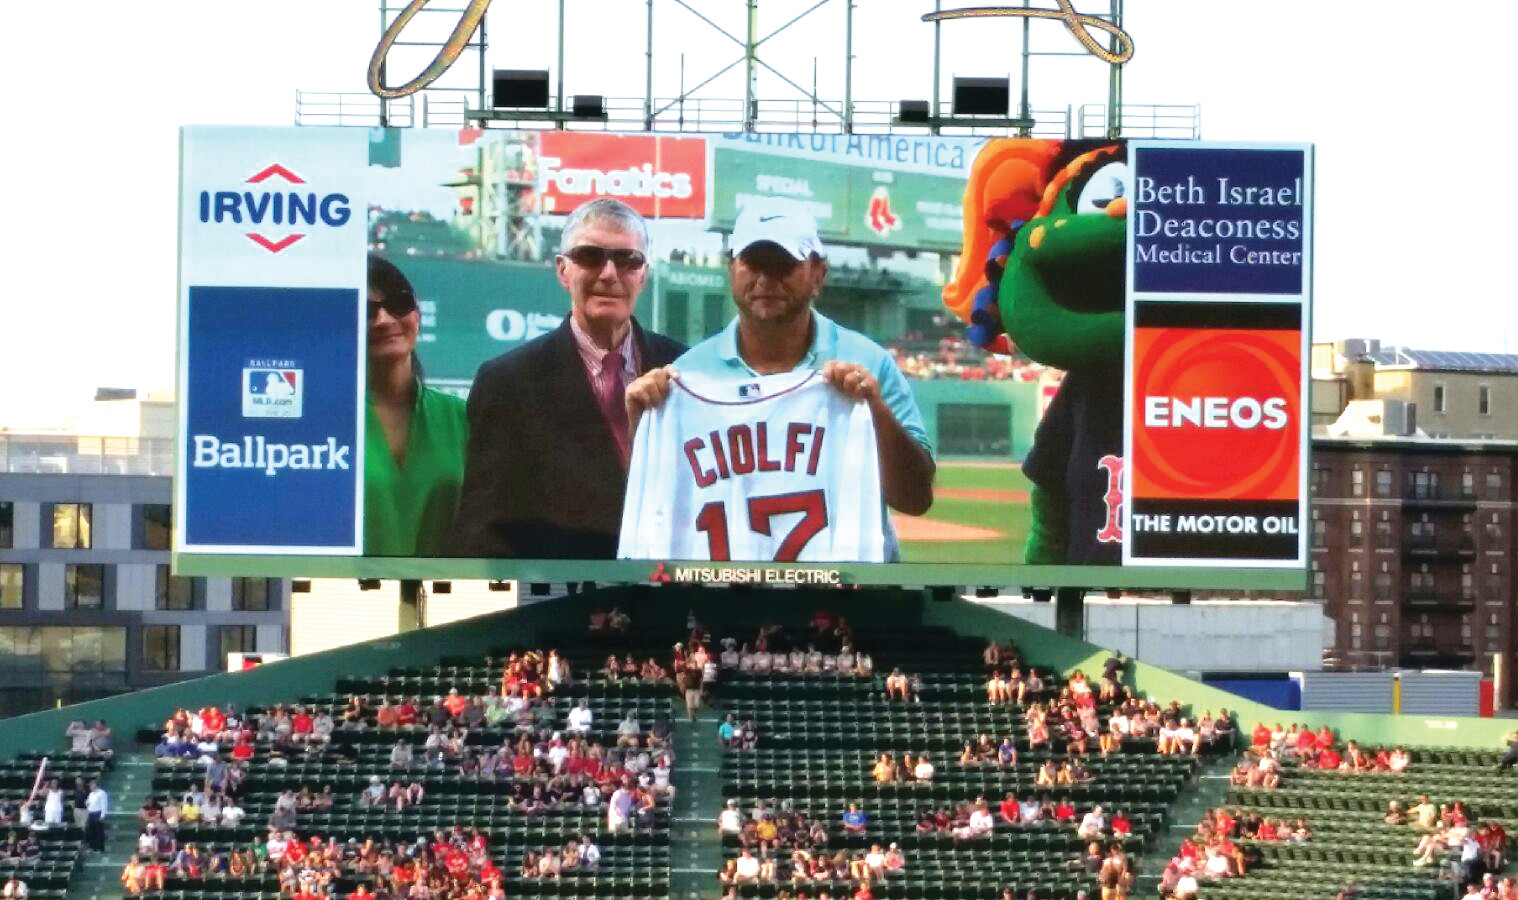 HONORED: David Ciolfi is recognized on the field at Fenway Park last Tuesday as the Rhode Island Little League Volunteer of the Year.